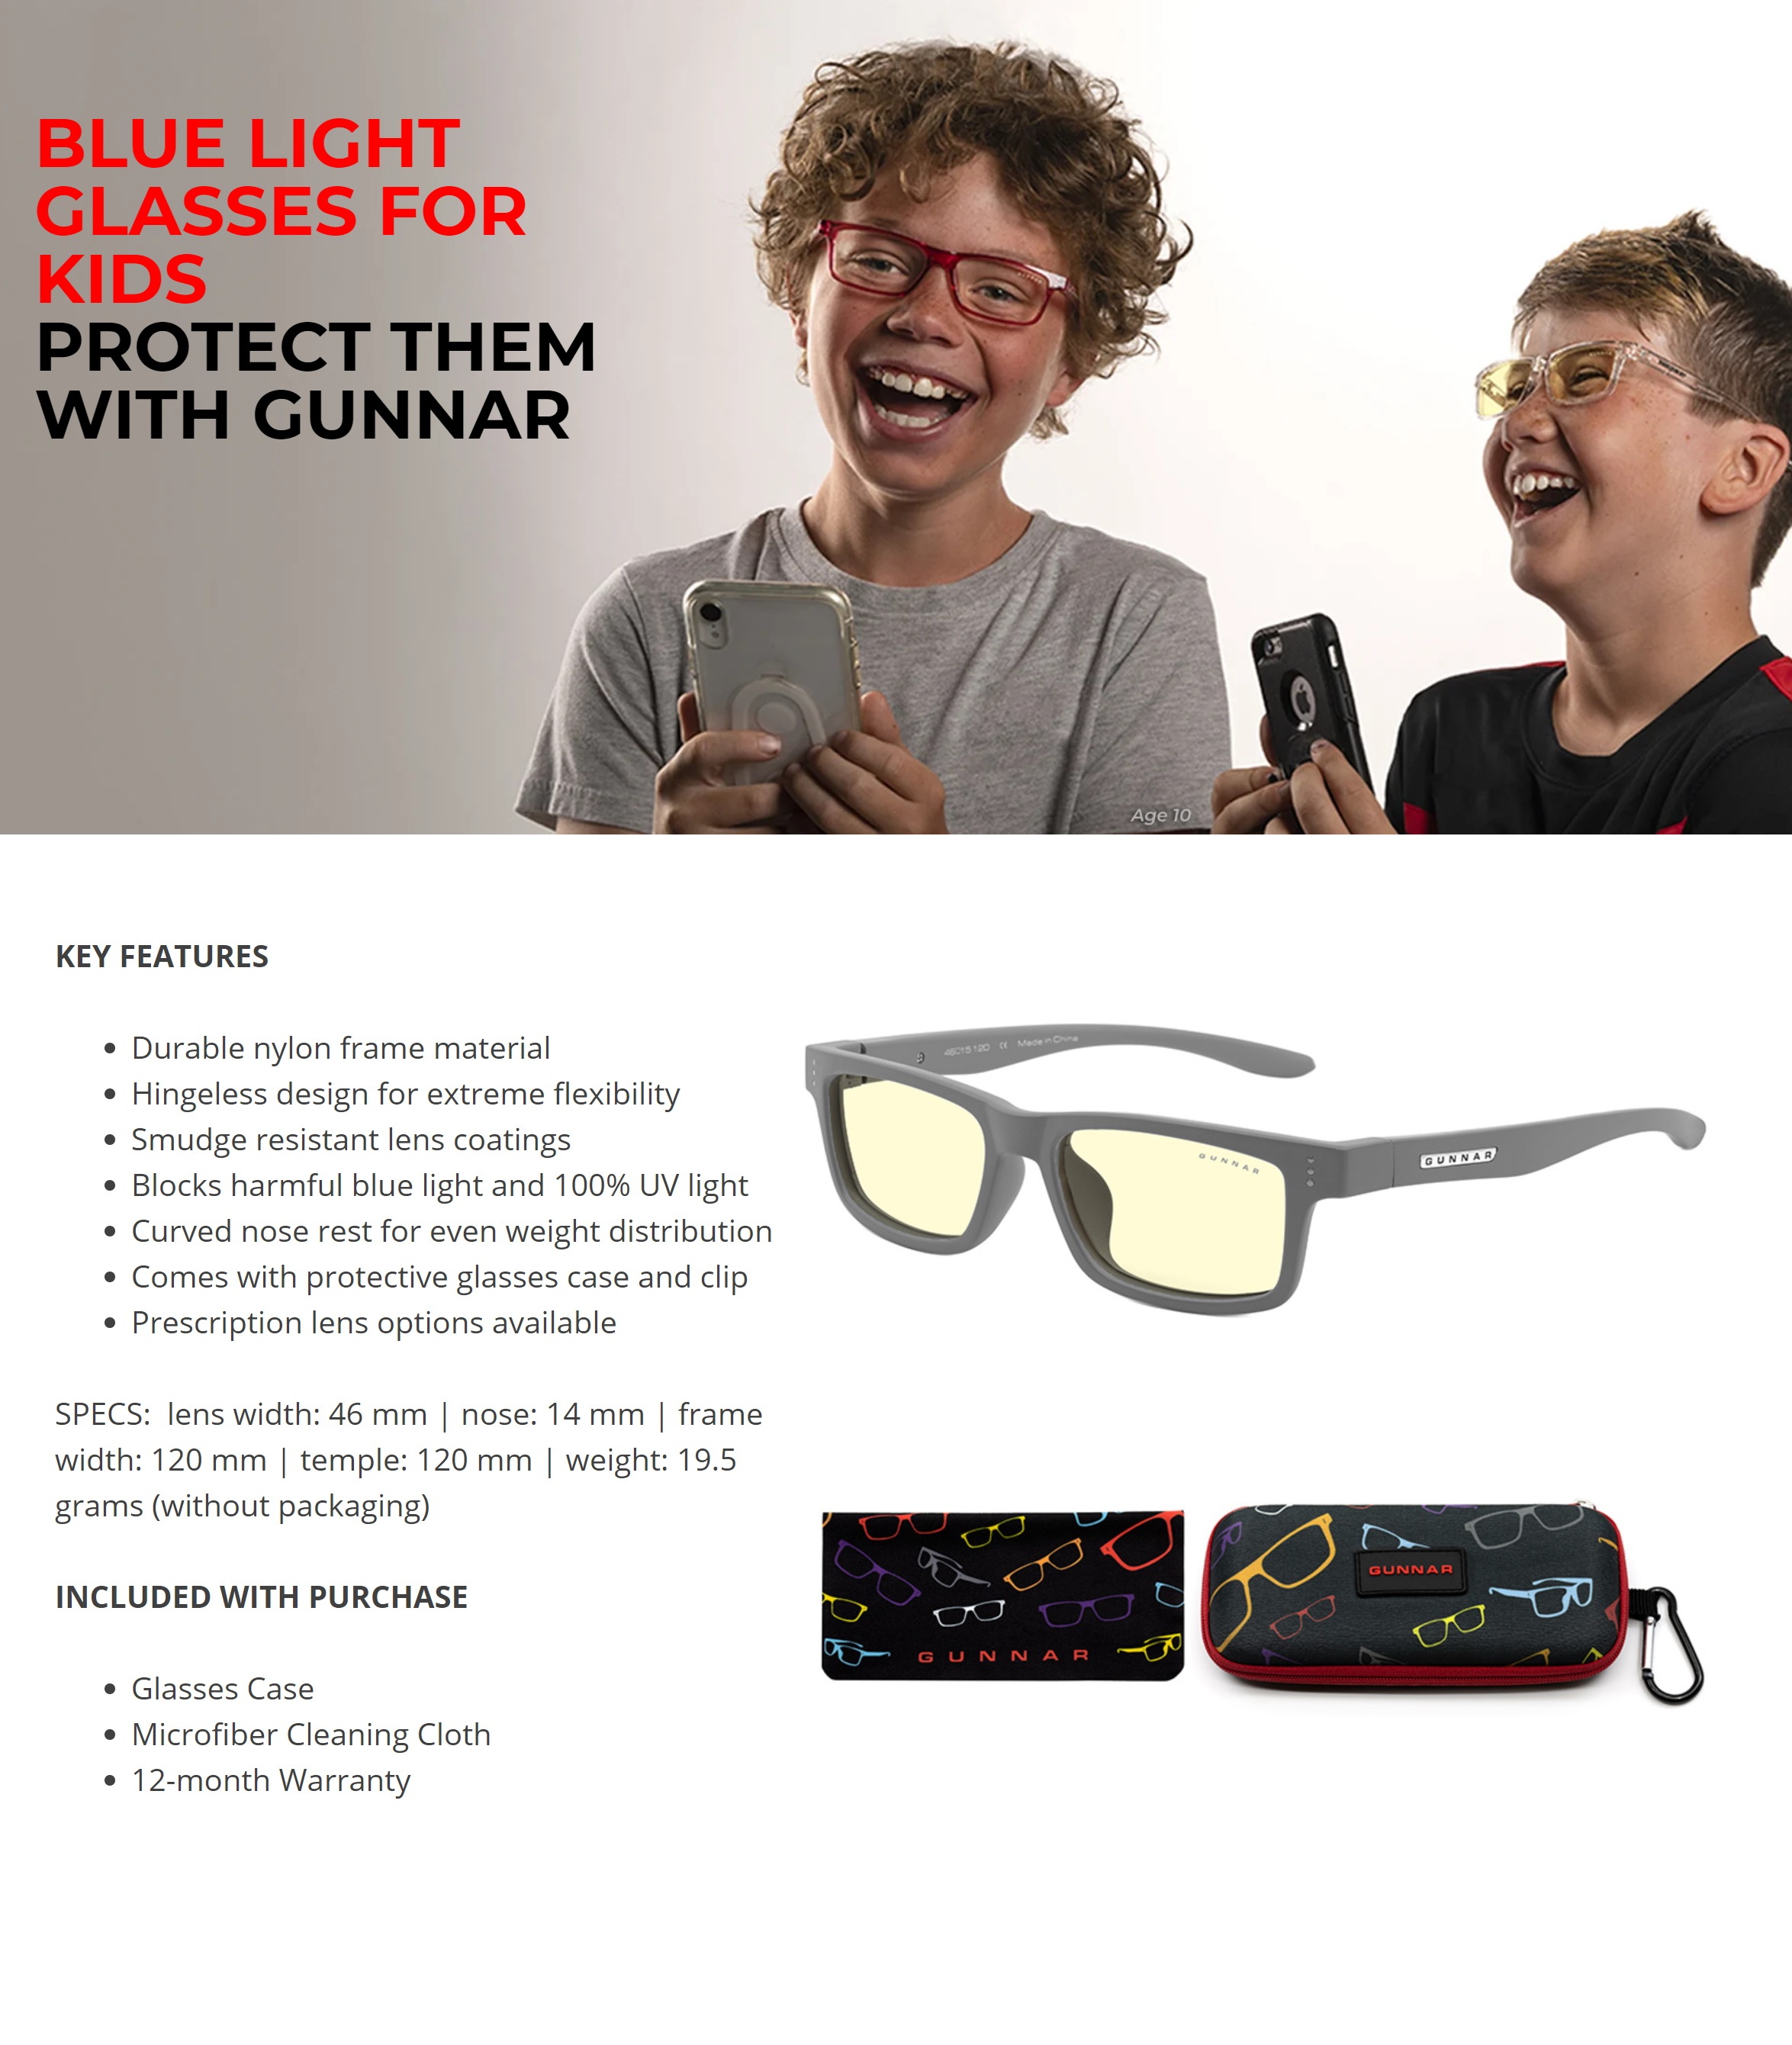 A large marketing image providing additional information about the product Gunnar Cruz Kids Amber Grey Indoor Digital Eyewear Small - Additional alt info not provided